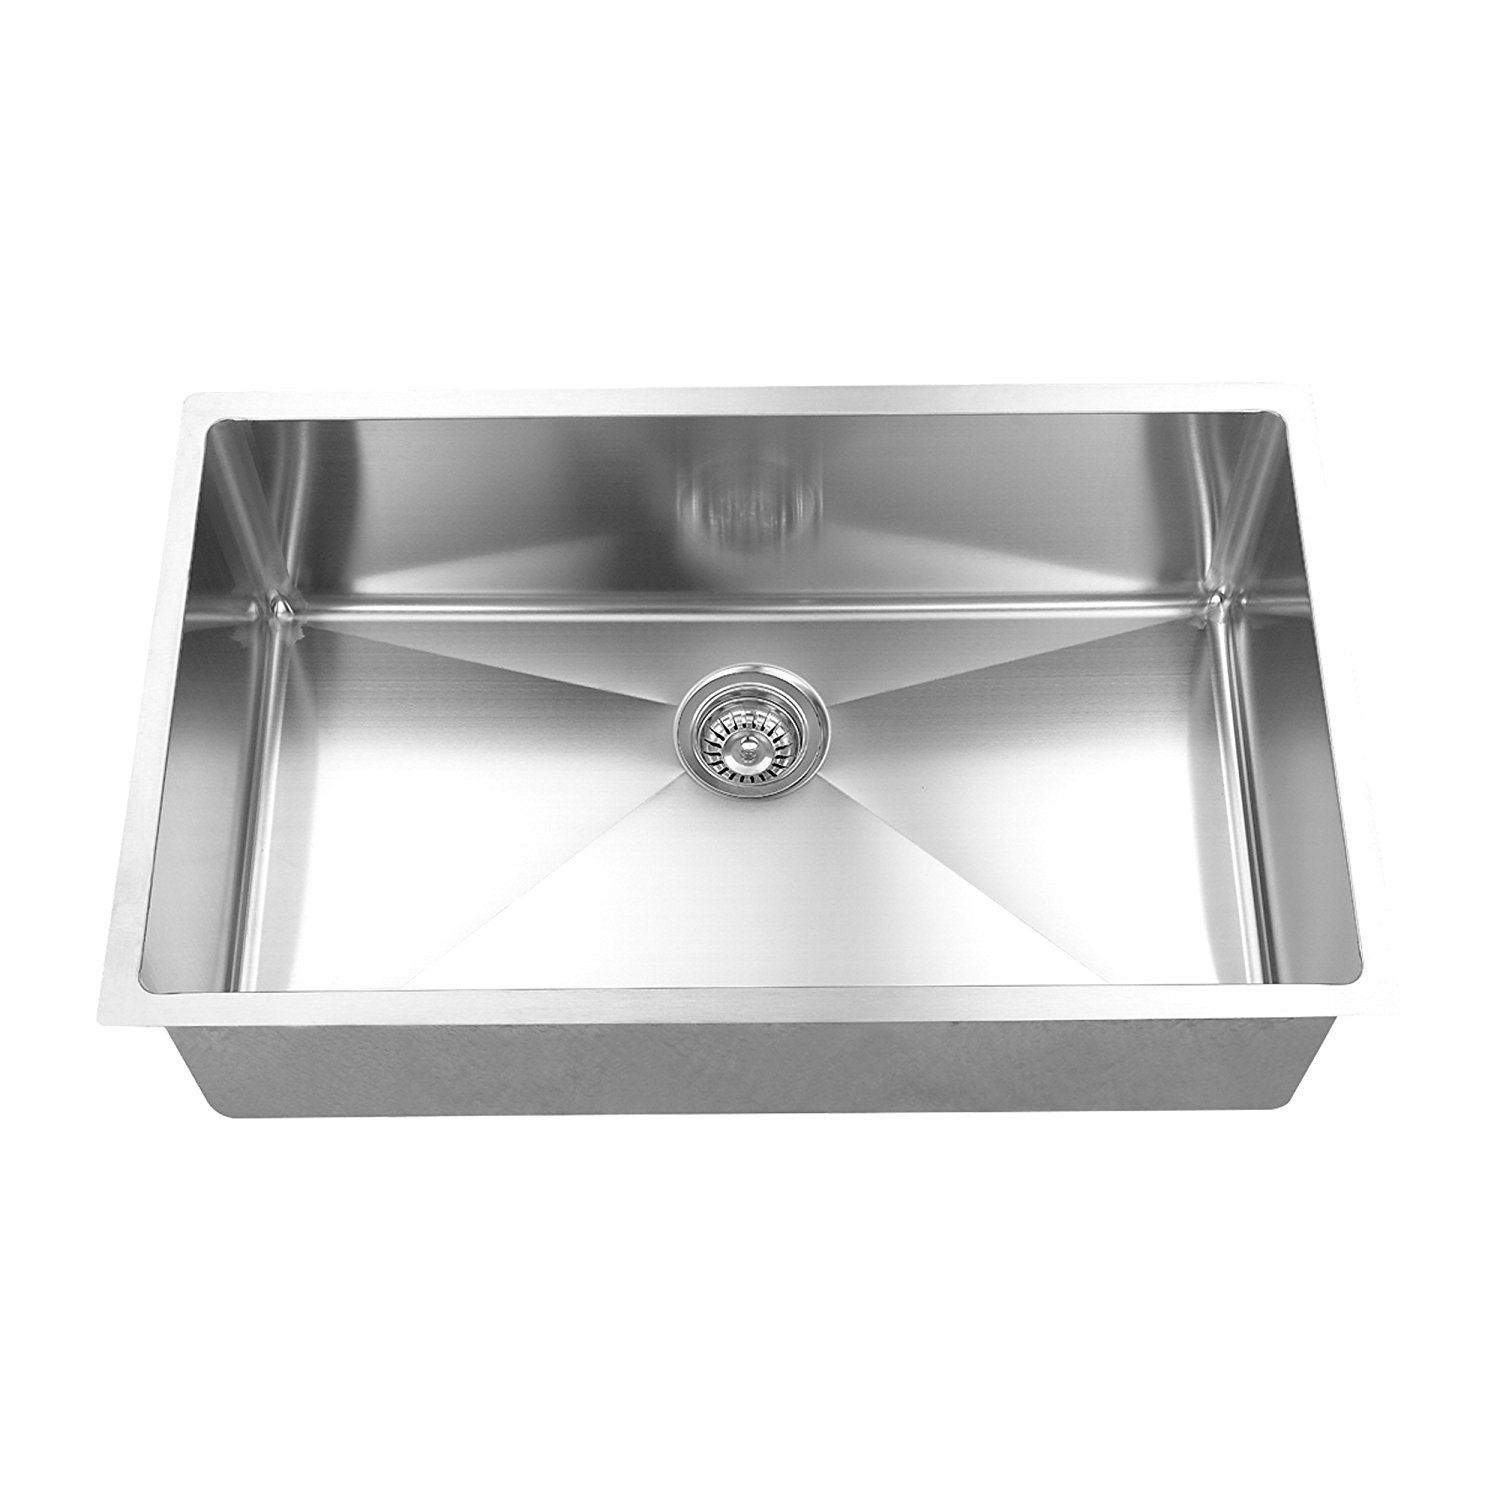 BOANN UMR3018 Hand Made 16 Gauge R15 Single Bowl Undermount 304 Stainless Steel Kitchen Sink with Grid, 30 x 18""